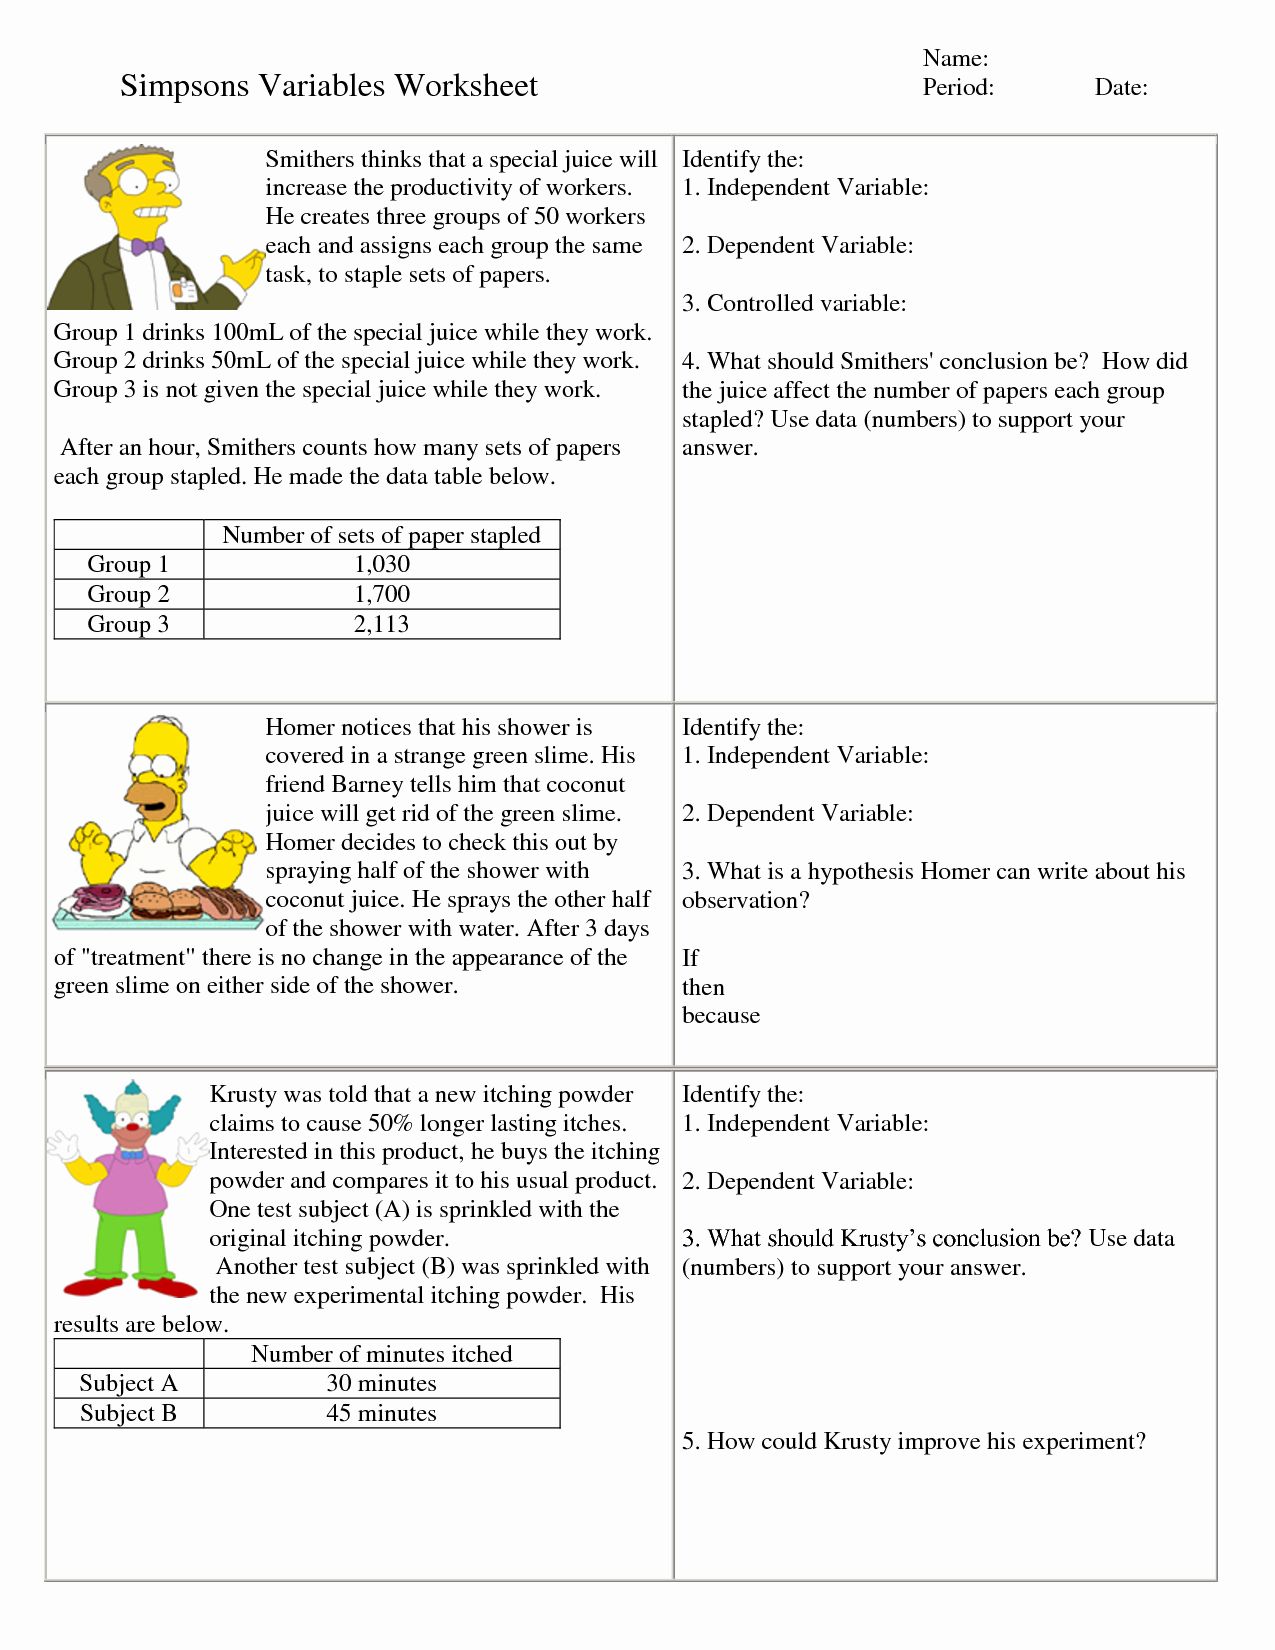 Simpsons Variables Worksheet Answers Elegant Independent and Dependent Variables Math Worksheet with